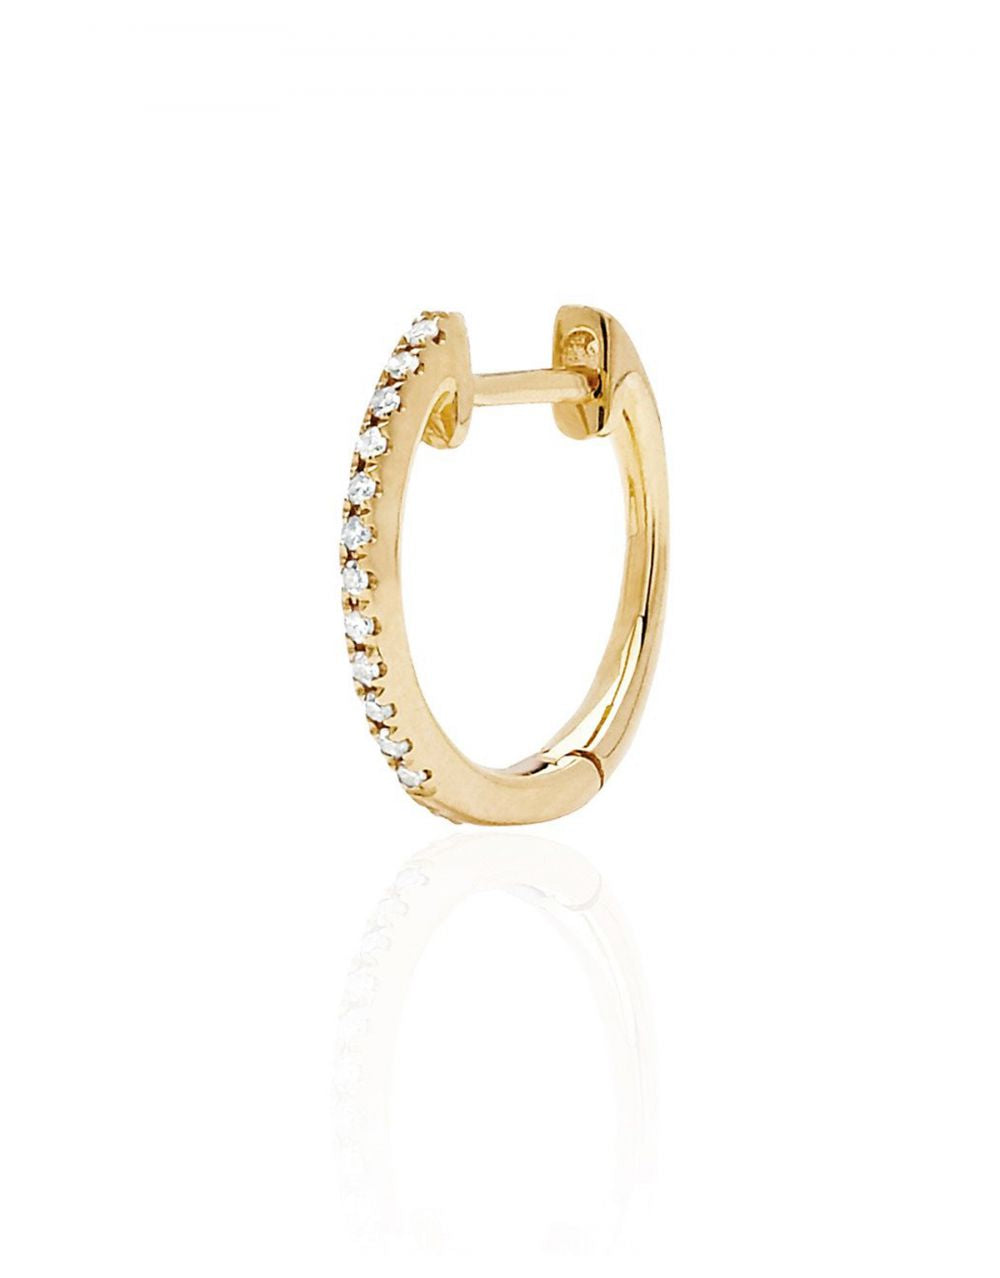 Mini Diamond Hoop Piercing<br /><i><small>14K Yellow Gold with White Diamonds</small></i><br />